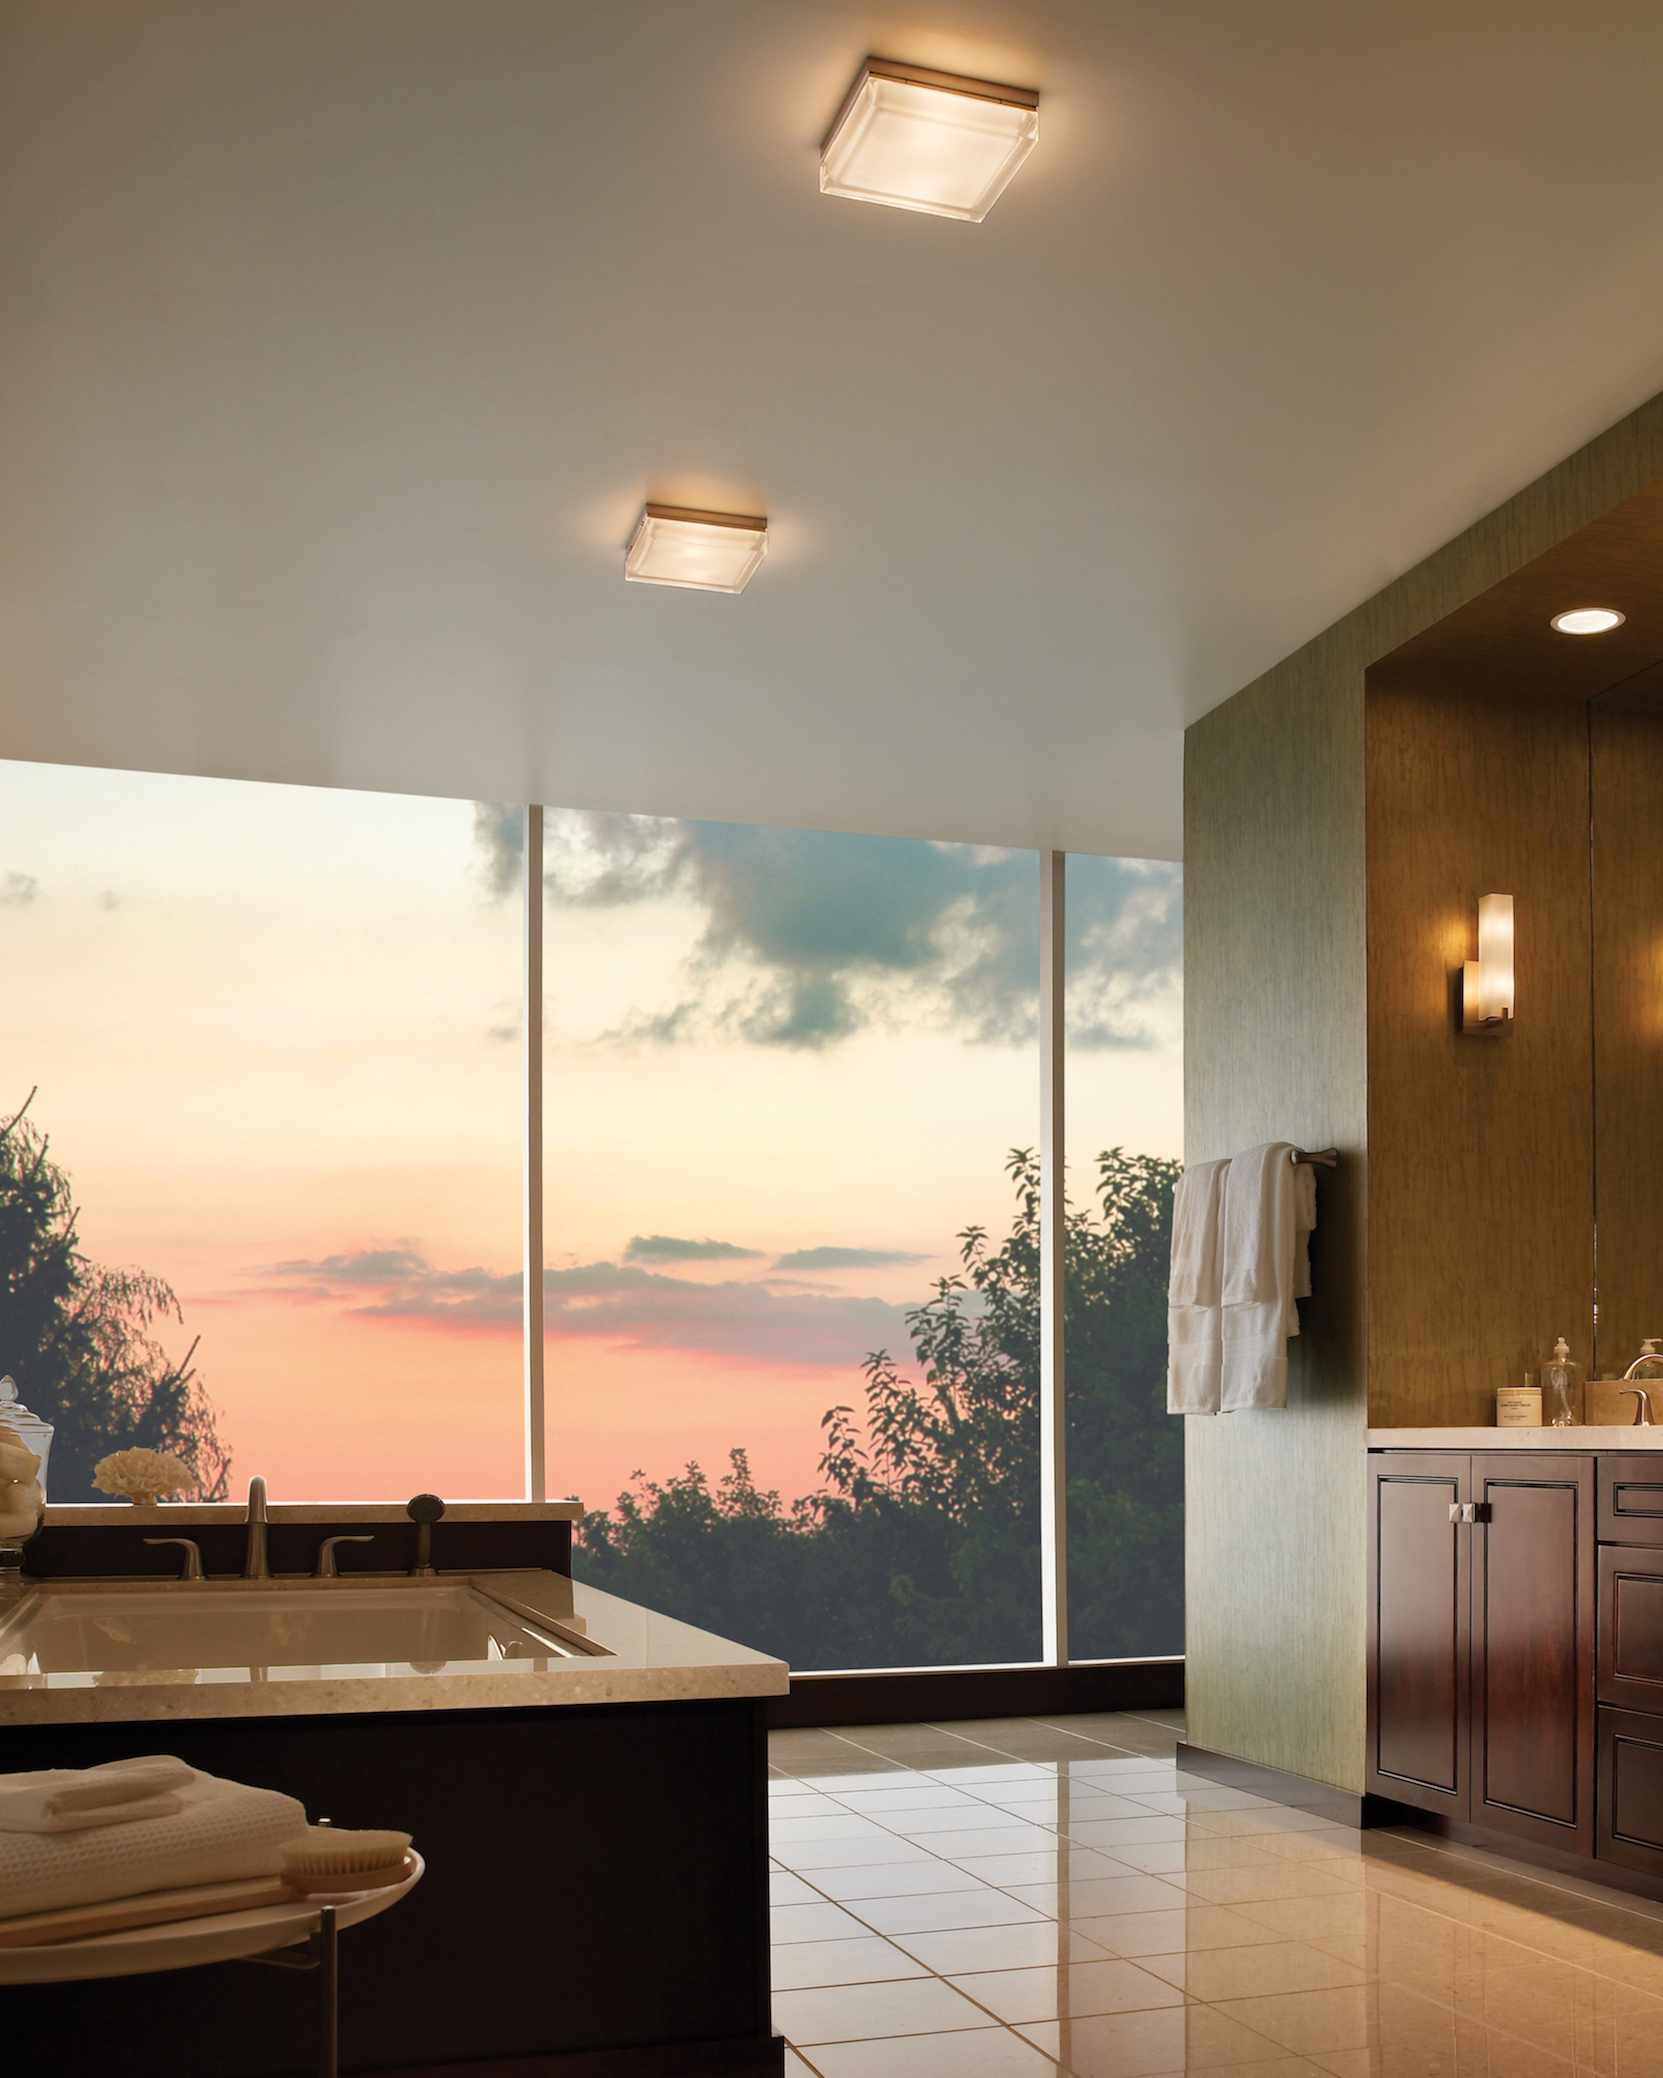 Bathroom Light Regs bathroom lighting buying guide | design necessities lighting